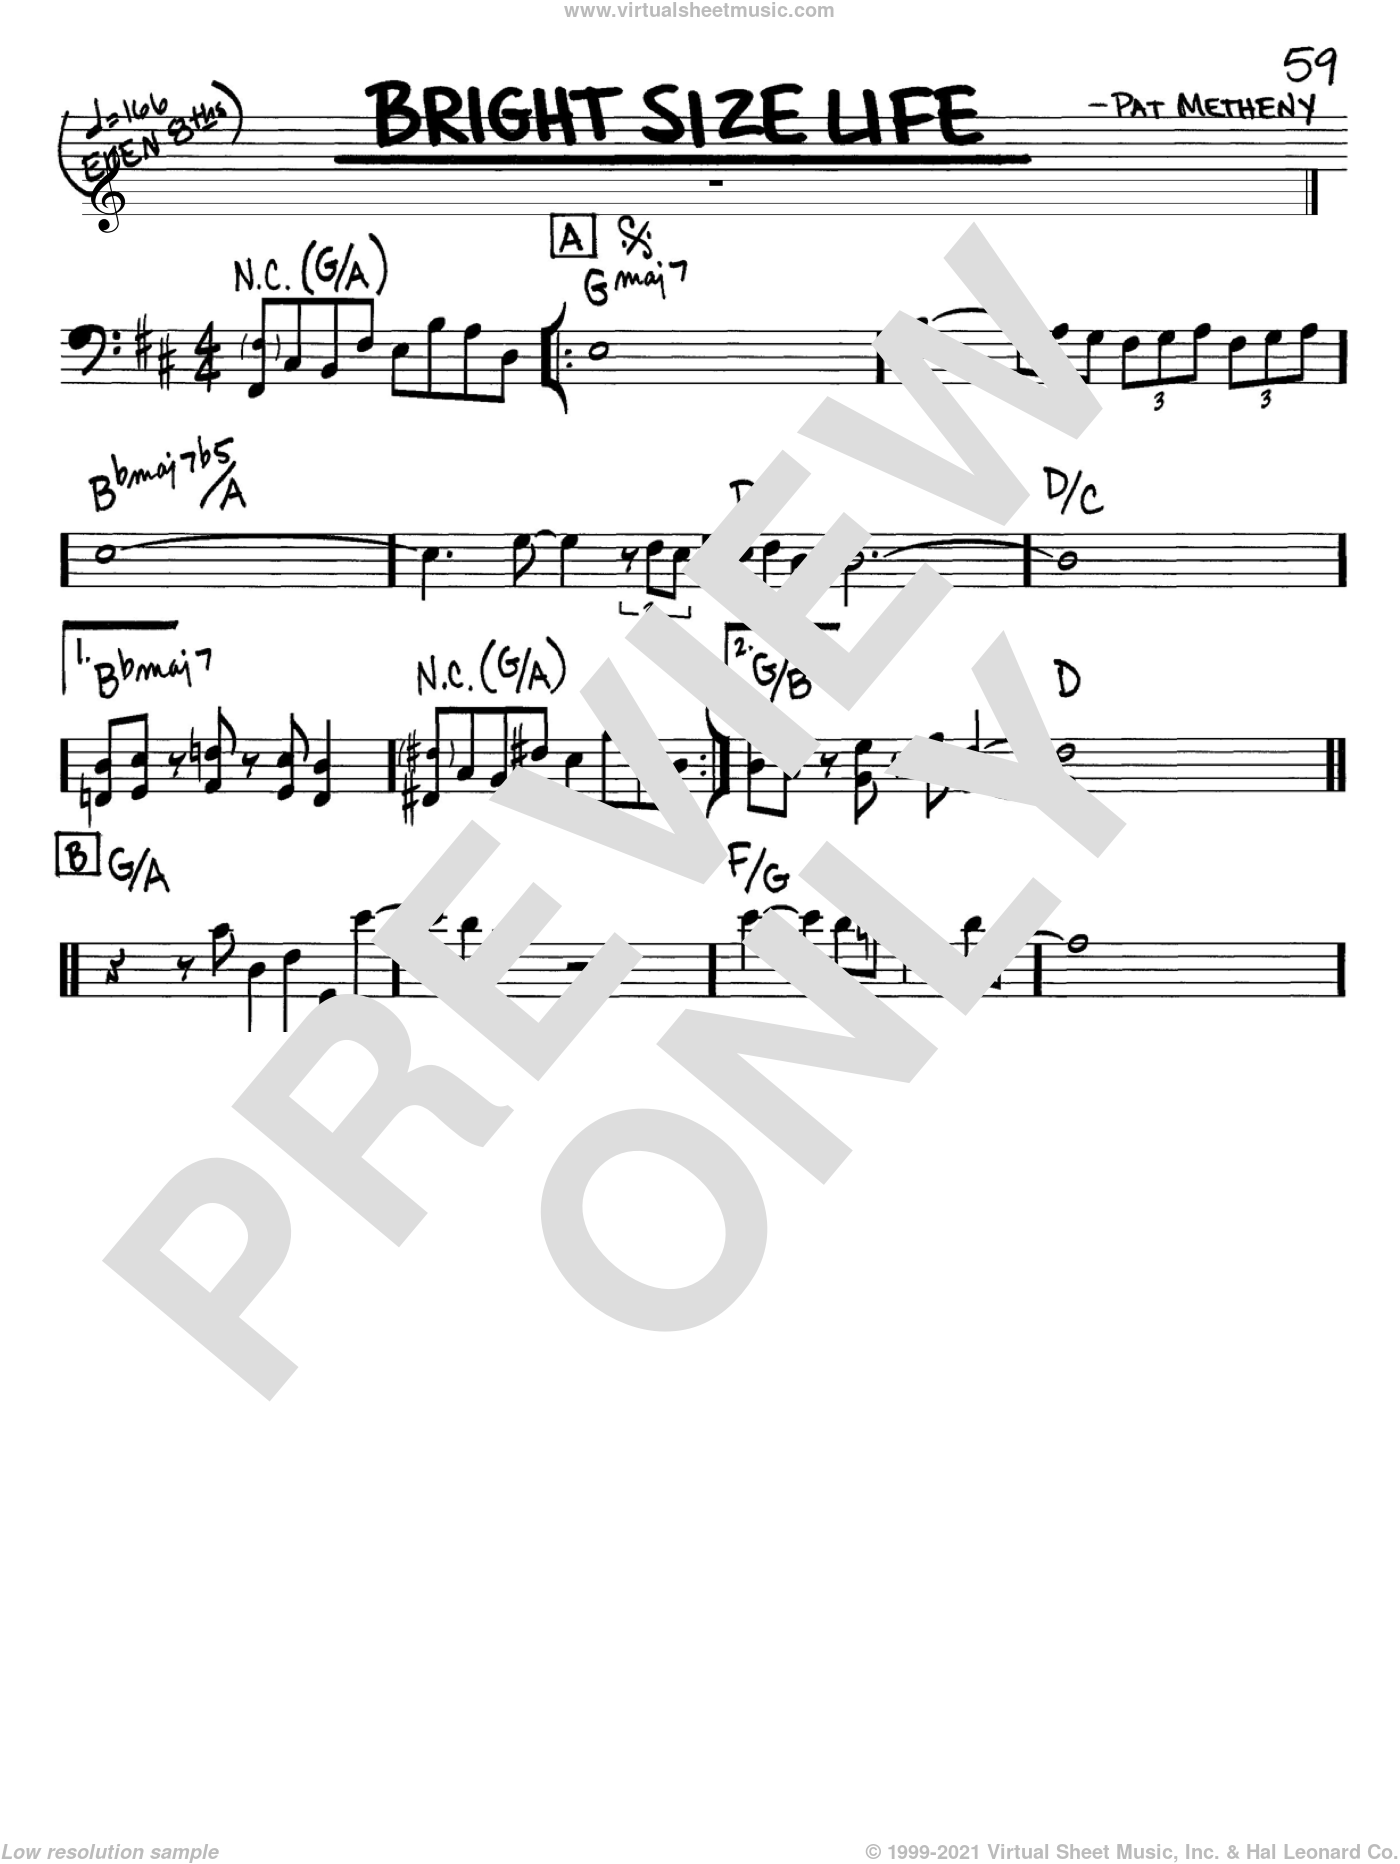 Bright Size Life sheet music for voice and other instruments (Bass Clef ) by Pat Metheny. Score Image Preview.